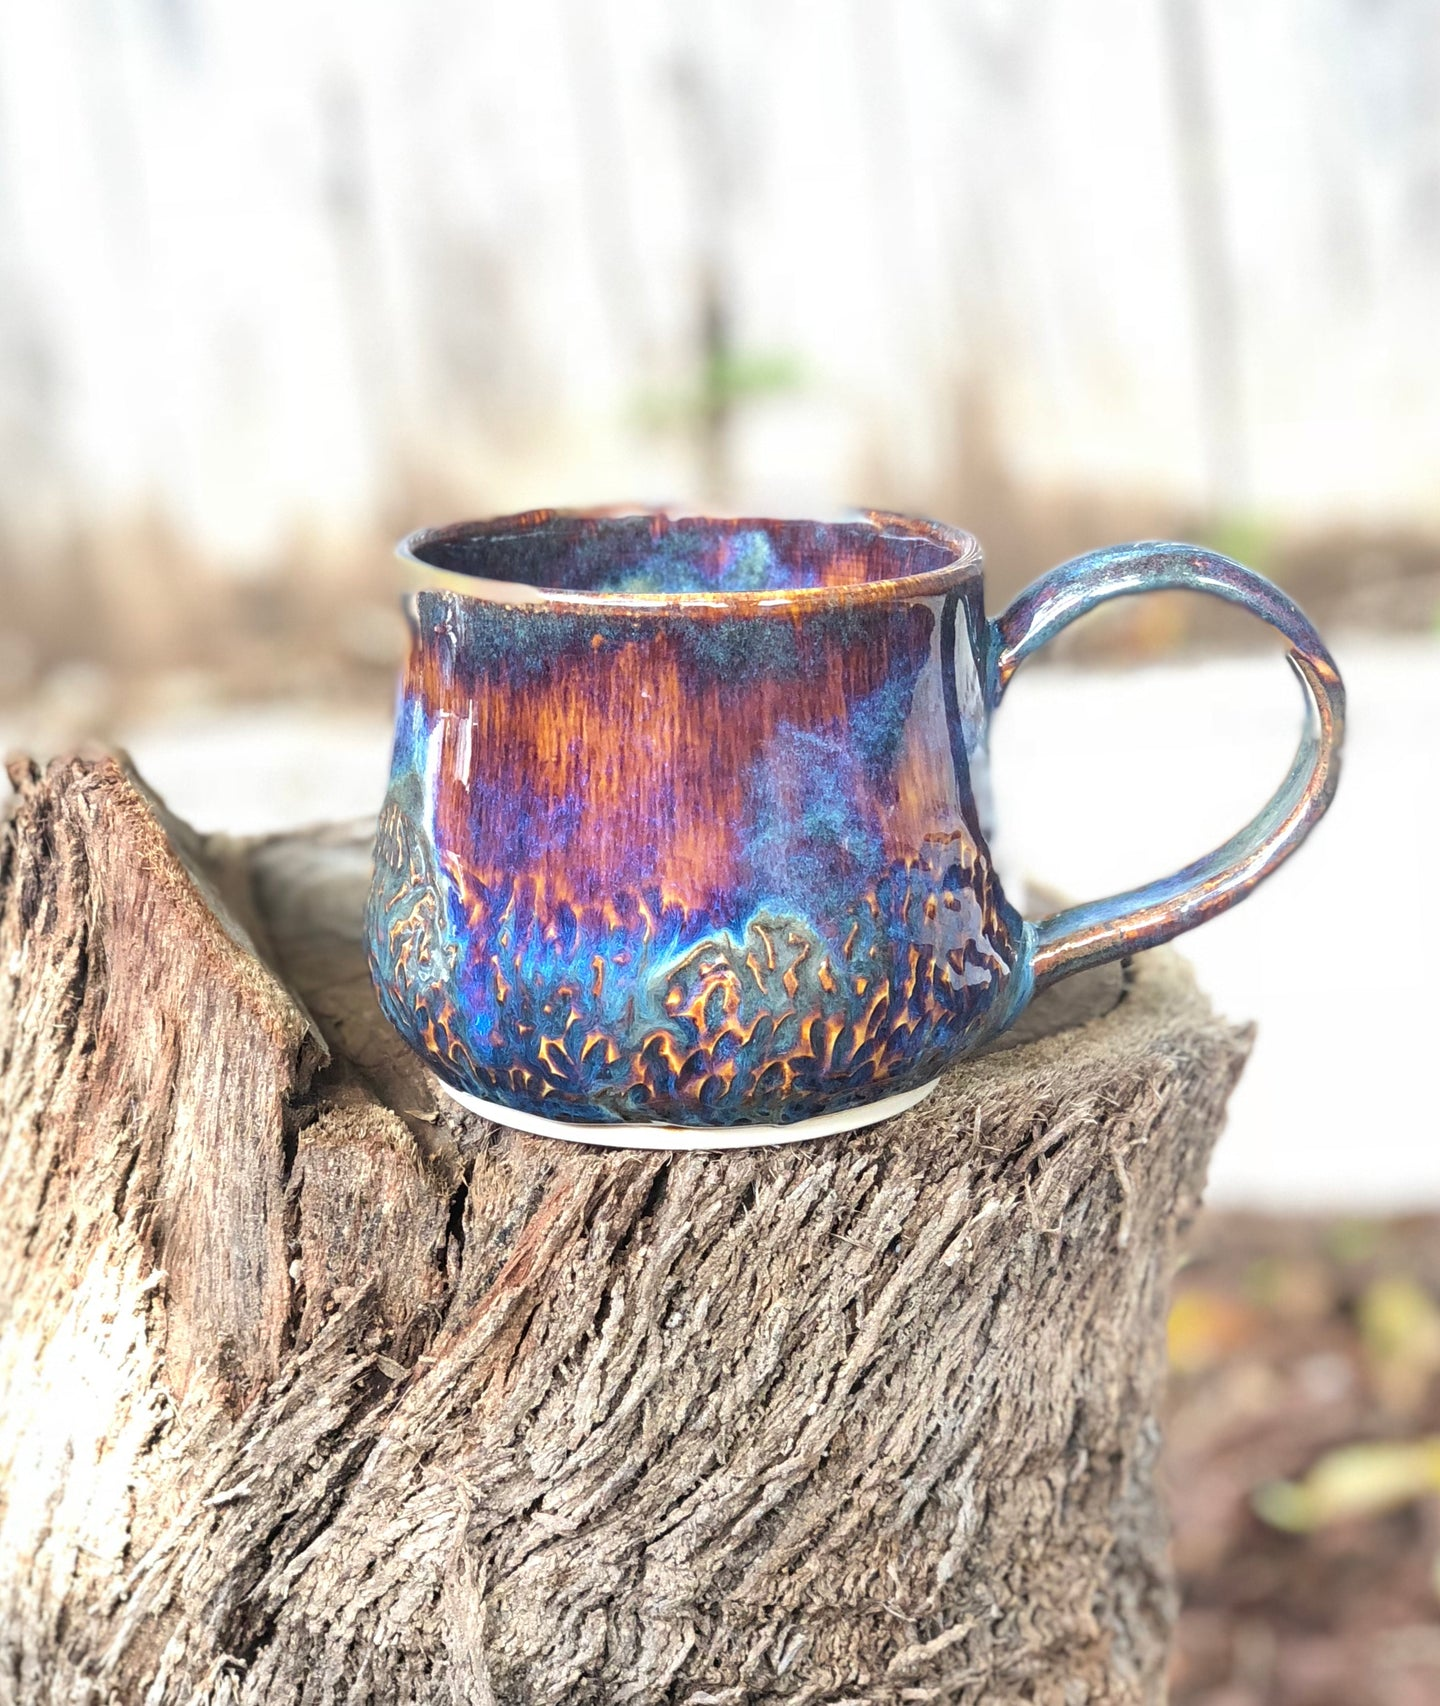 Faceted Aurora borealis - Drippy Purple Coffee Mug 18 oz - Hsiaowan Studios Handmade Ceramics Pottery